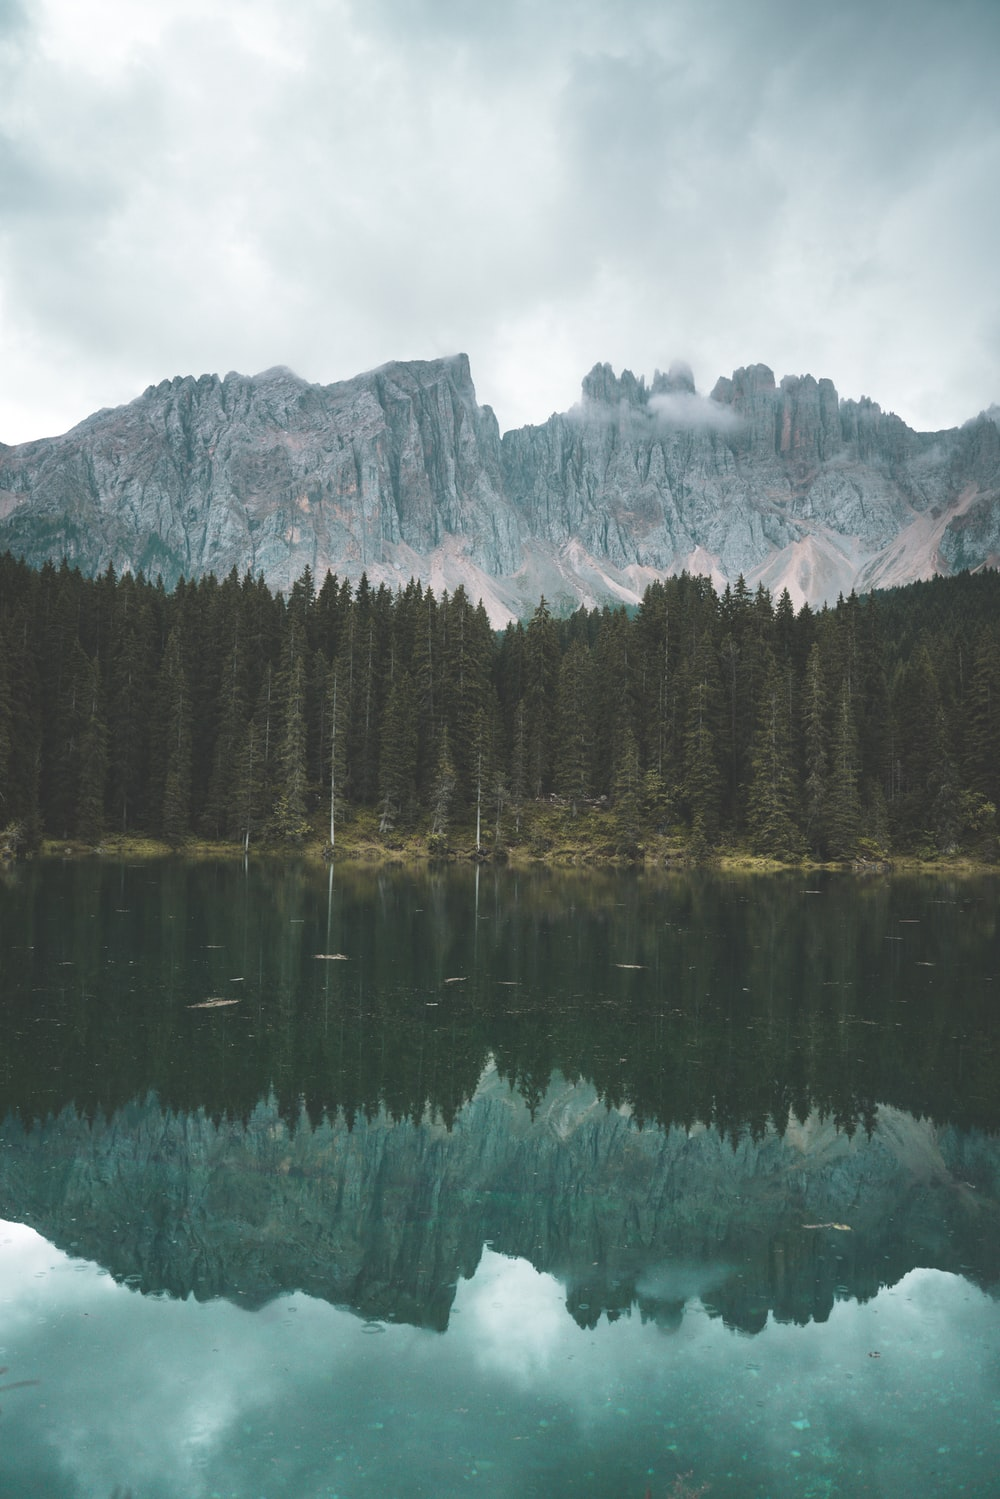 trees reflecting on body of water near mountains